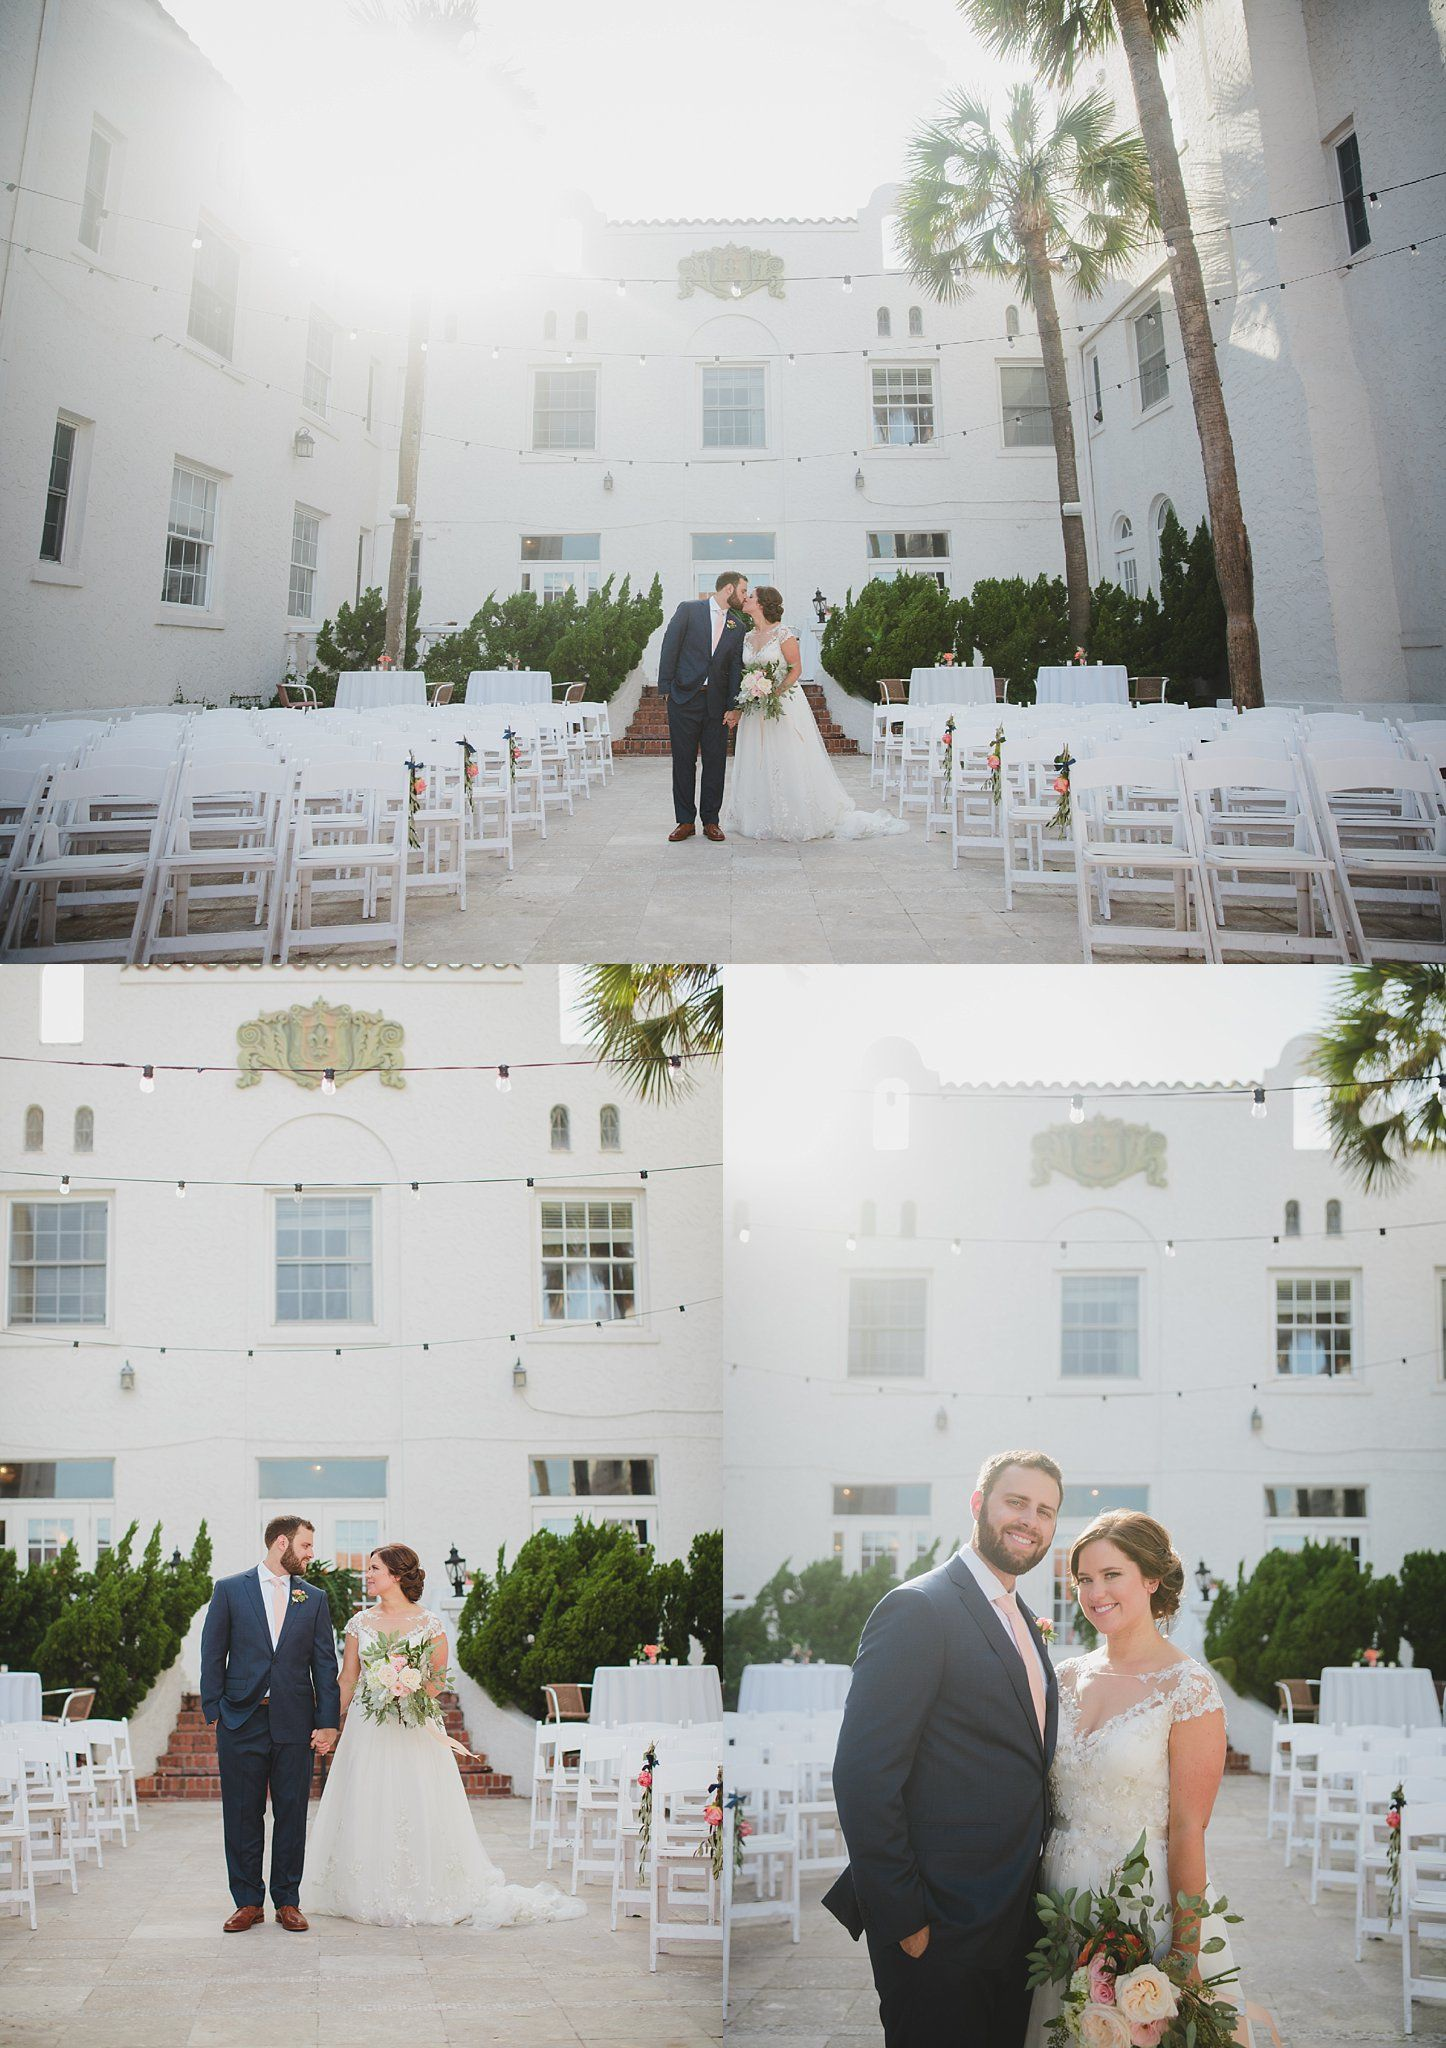 Casa Marina Beach Wedding Marina Beach Wedding Jacksonville Beach